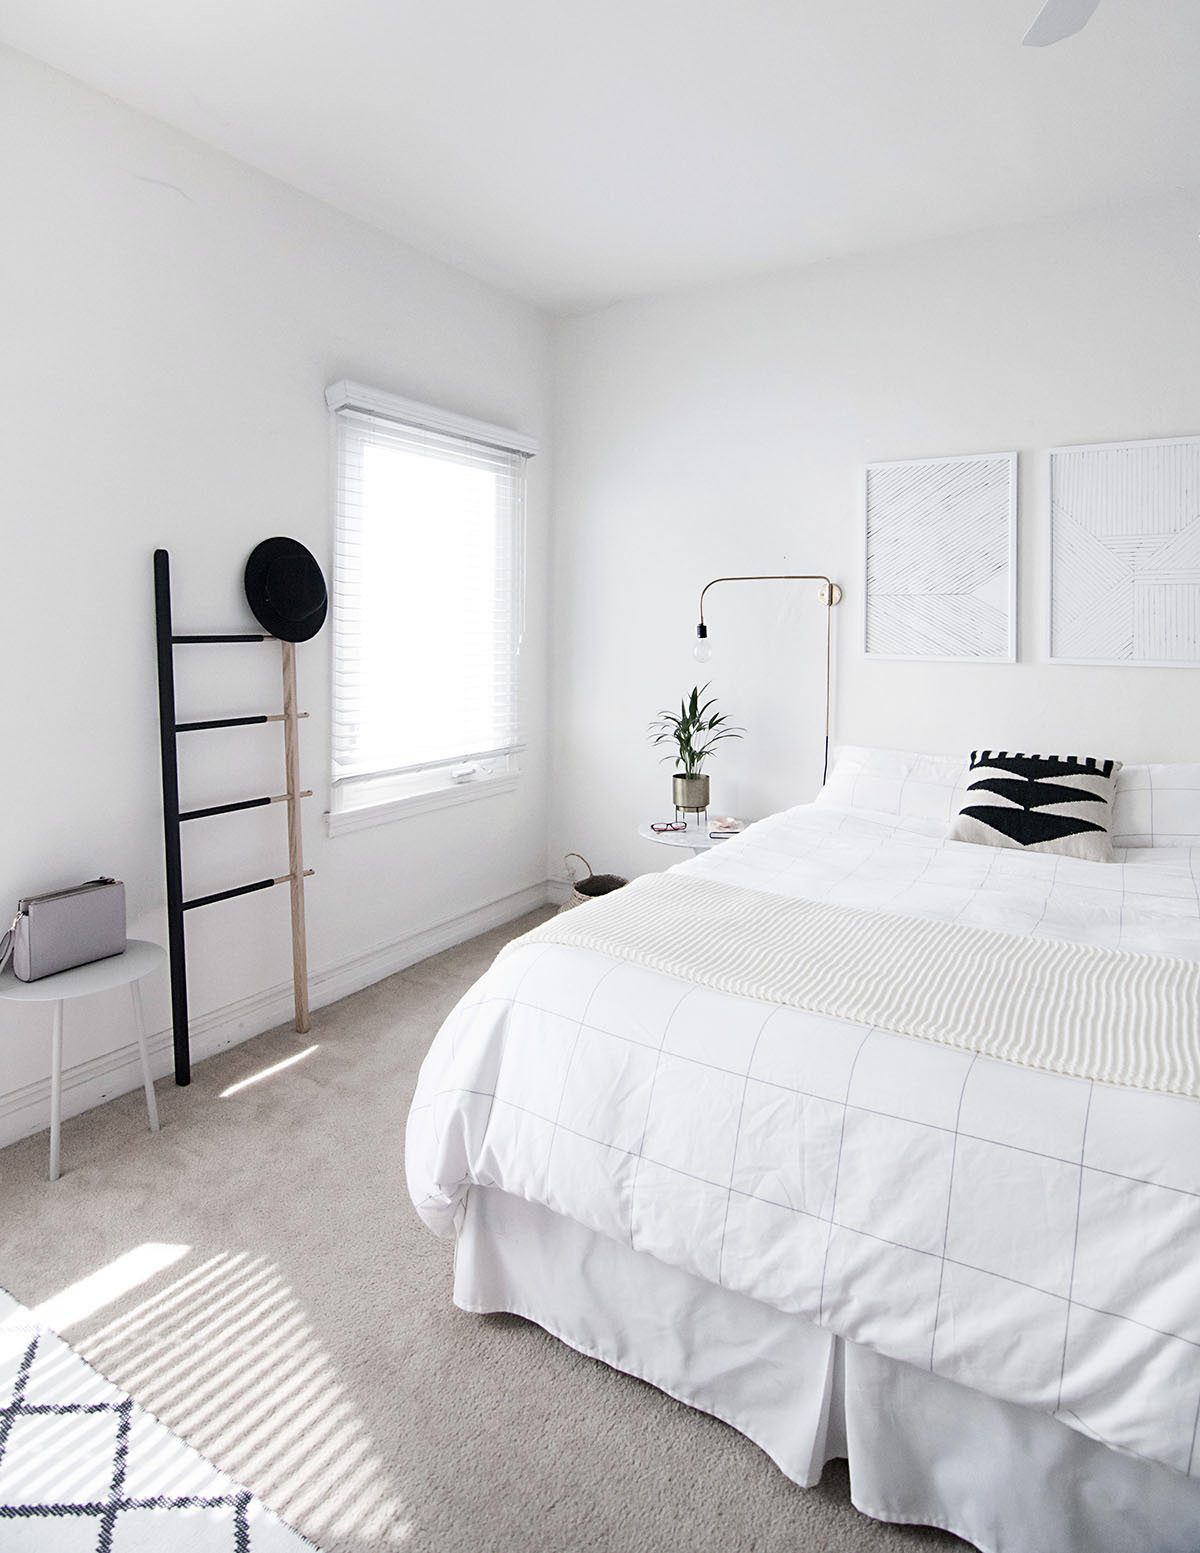 How to Achieve a Minimal Scandinavian Bedroom - Homey Oh My on Minimalist Bedroom Ideas  id=45183